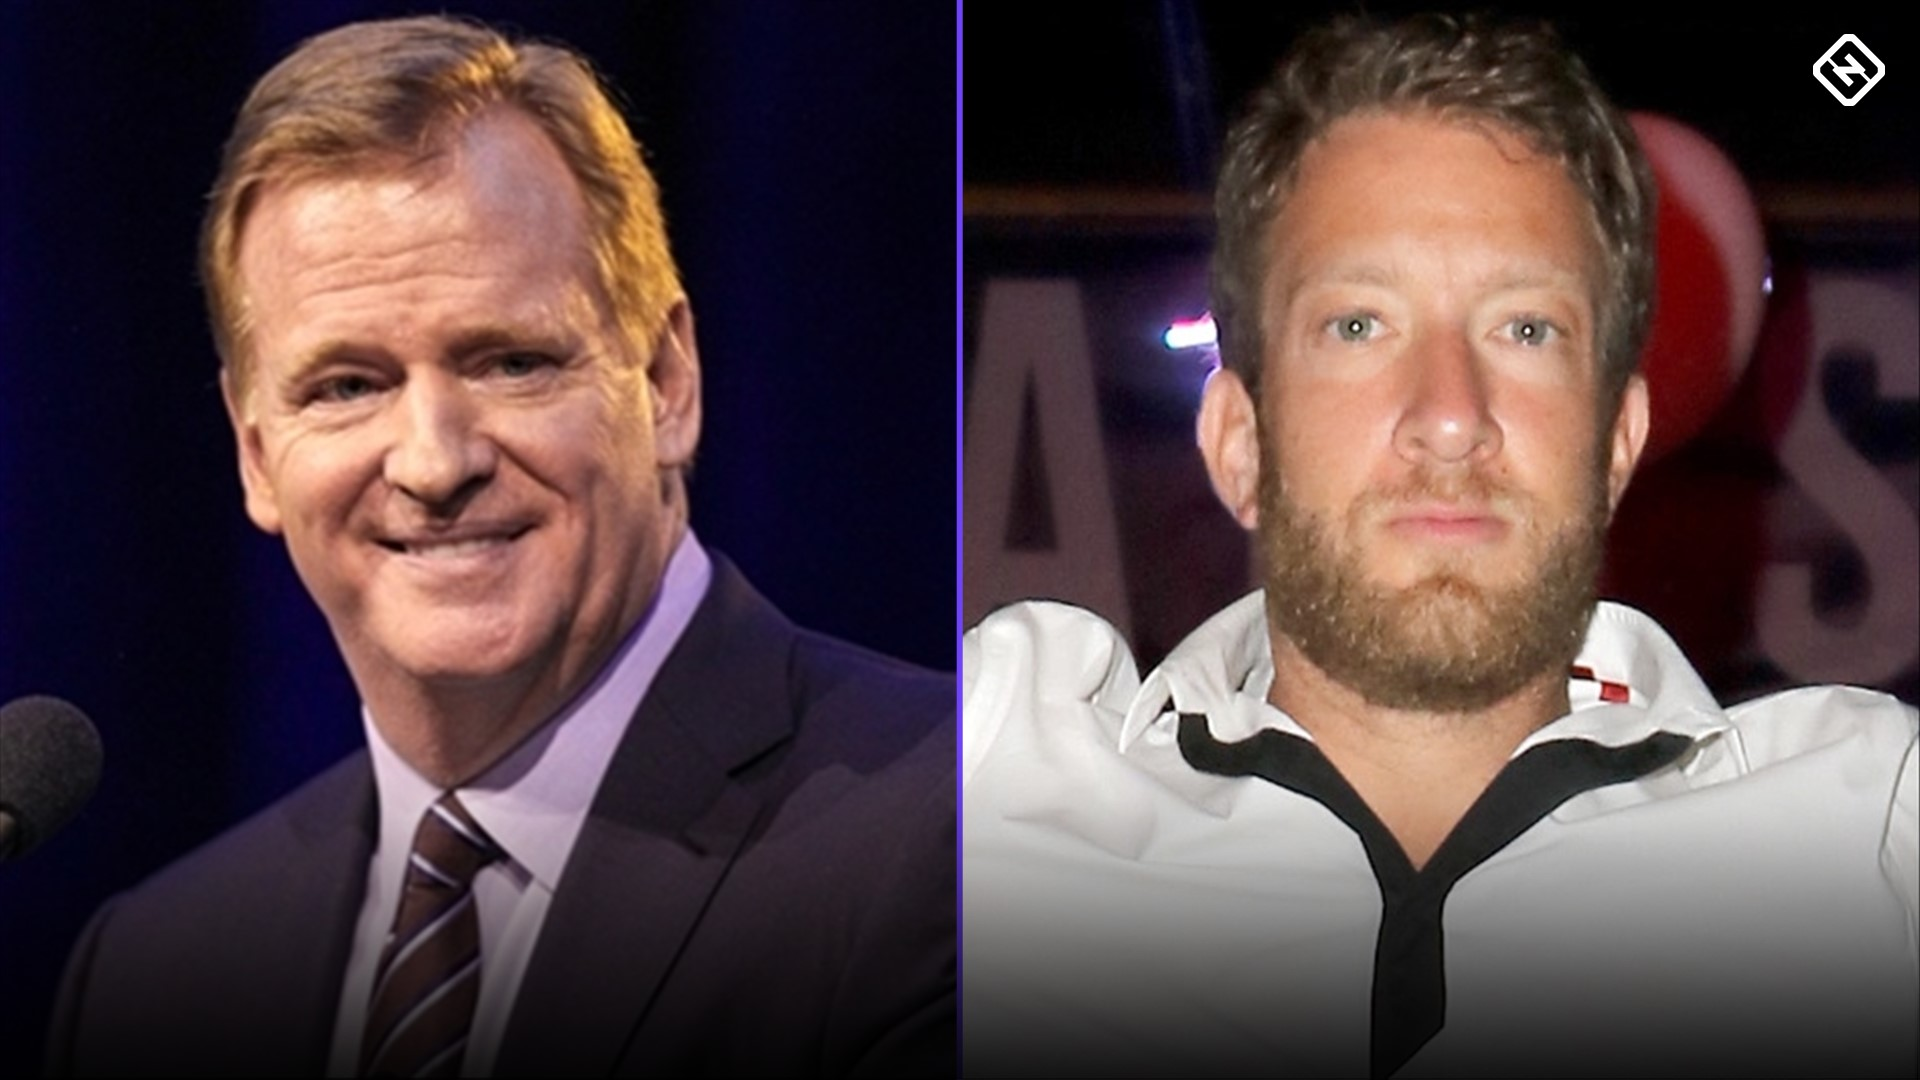 NFL gets out of Roger Goodell sitdown with Barstool's Dave Portnoy, who then calls commish a 'coward' 1